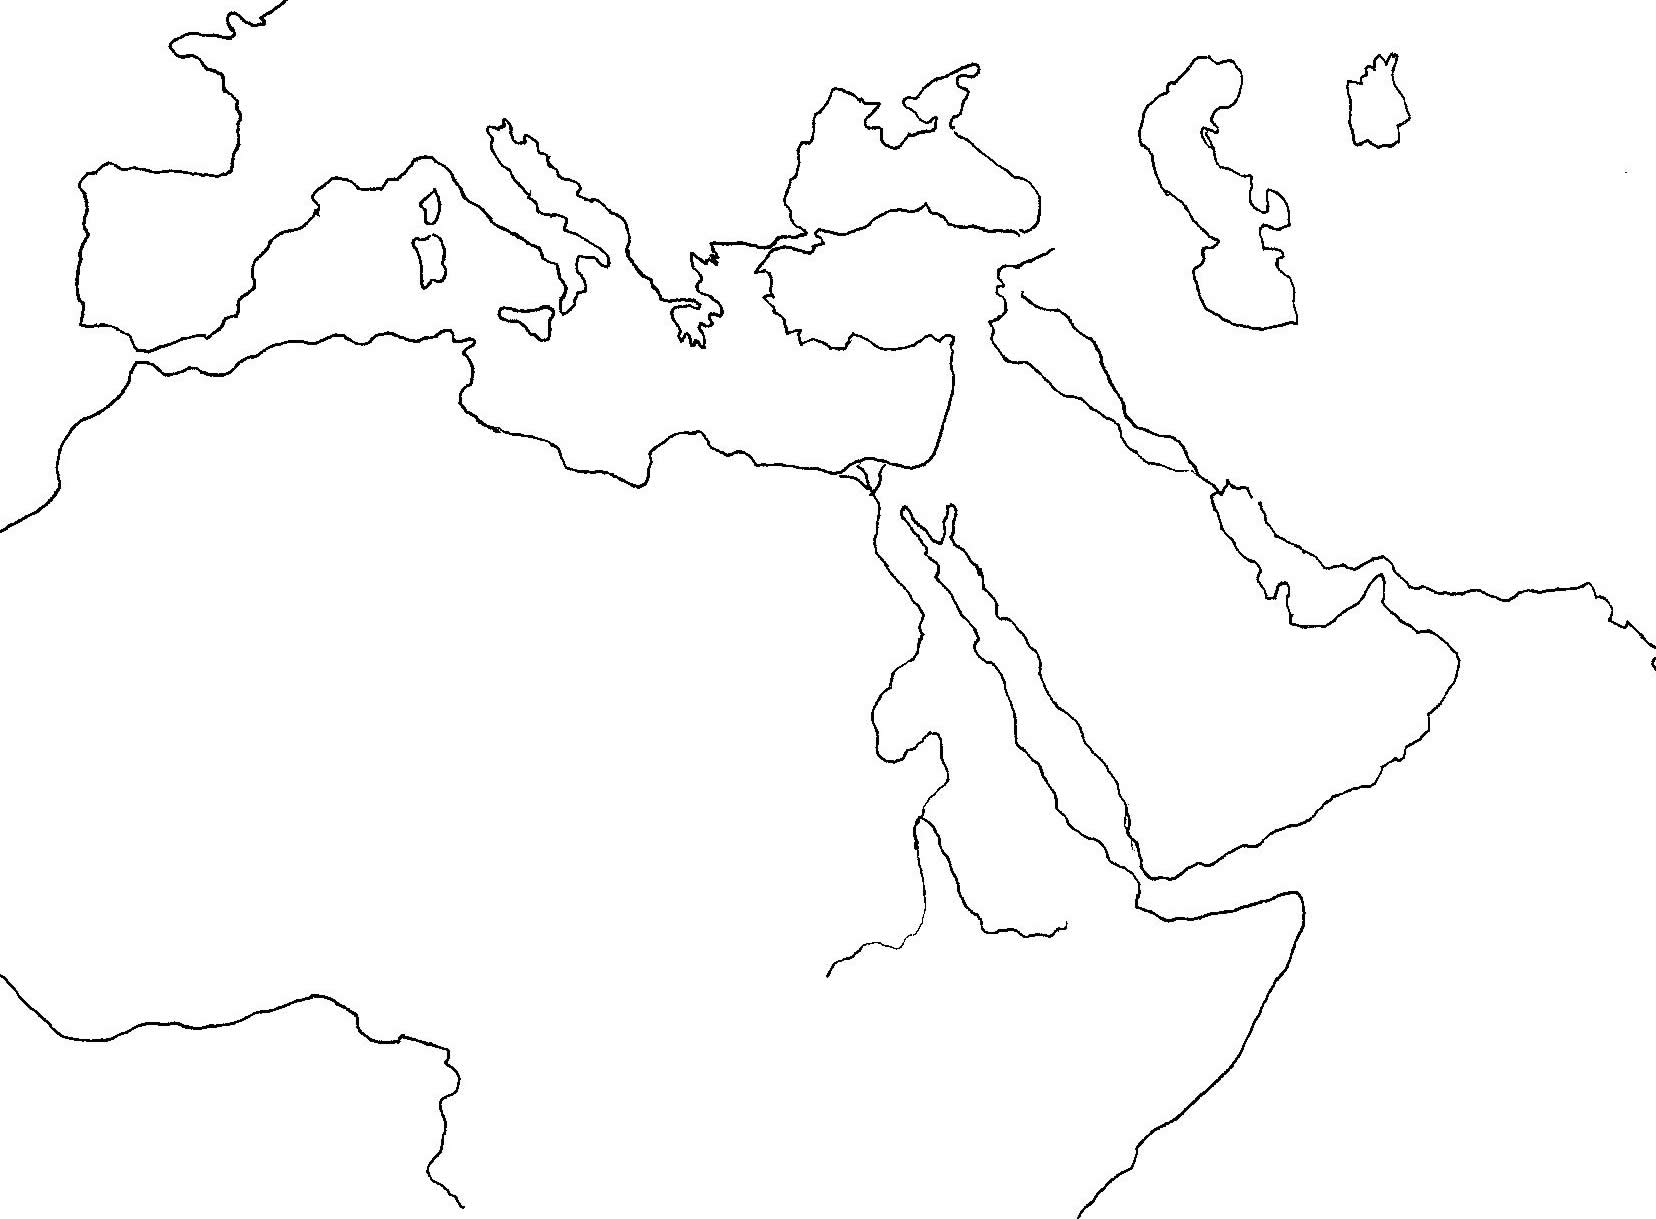 Outline Map Europe And Asia convincing essay research